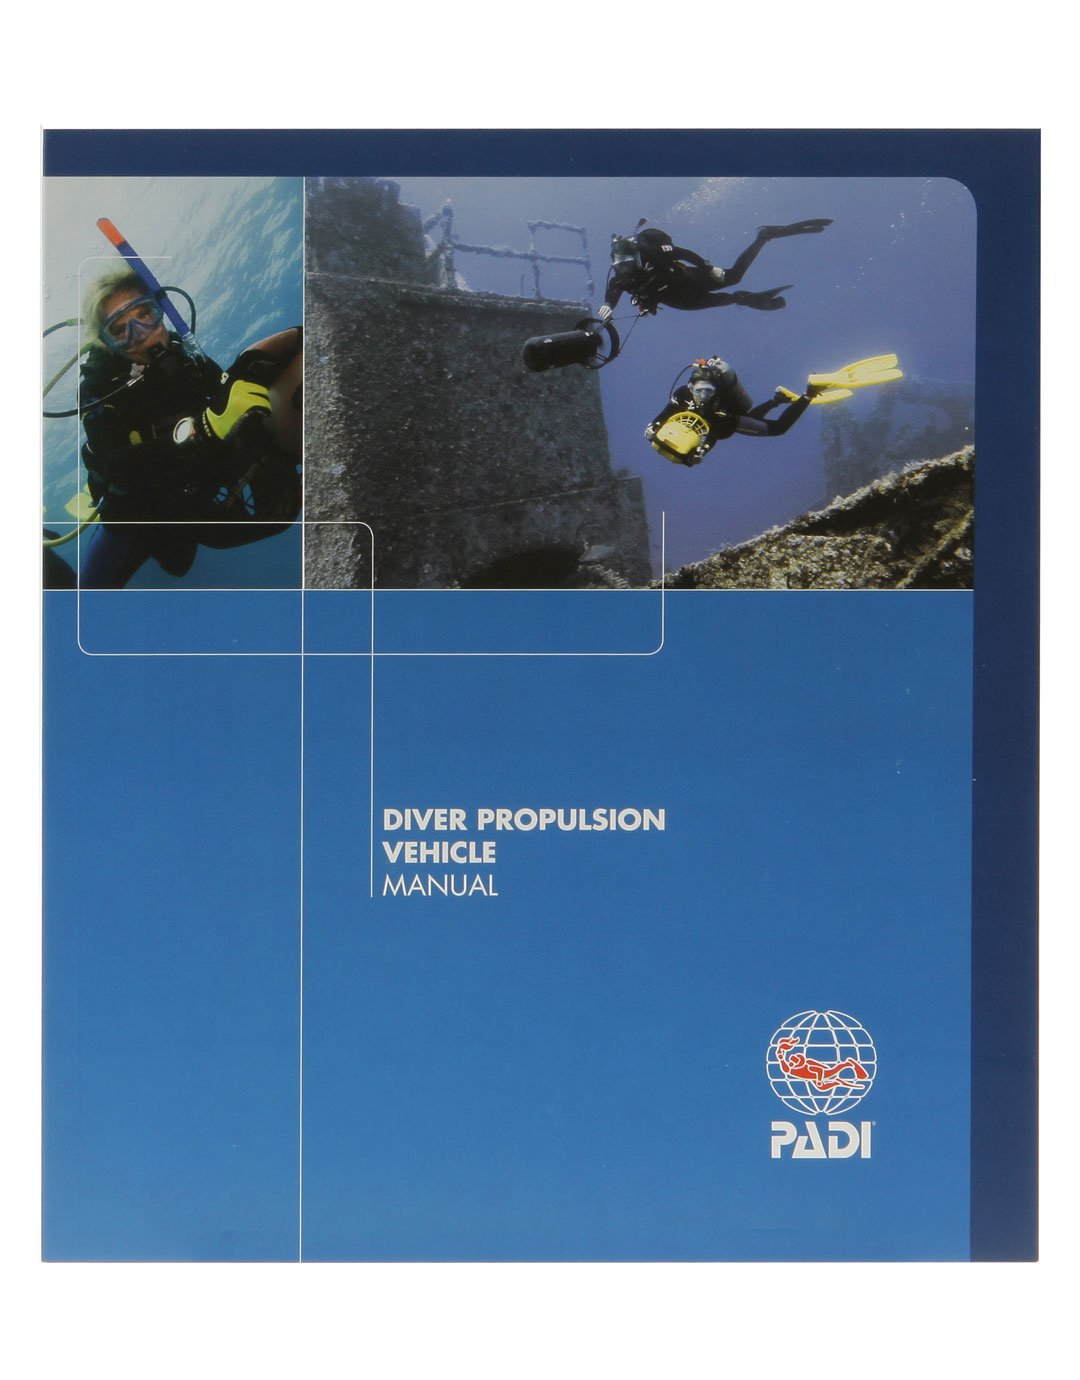 Image of PADI Diver Propulsion Vehicle Manual